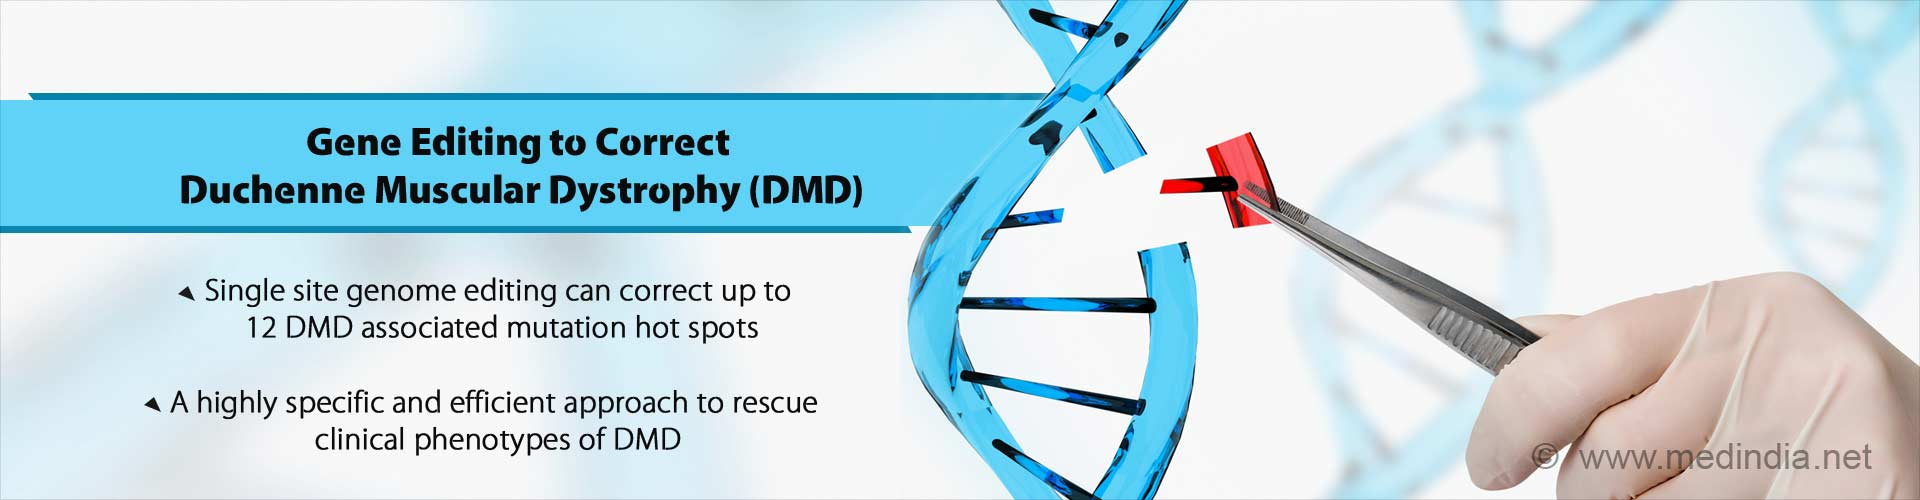 gene editing to correct duchenne muscular dystrophy (DMD)